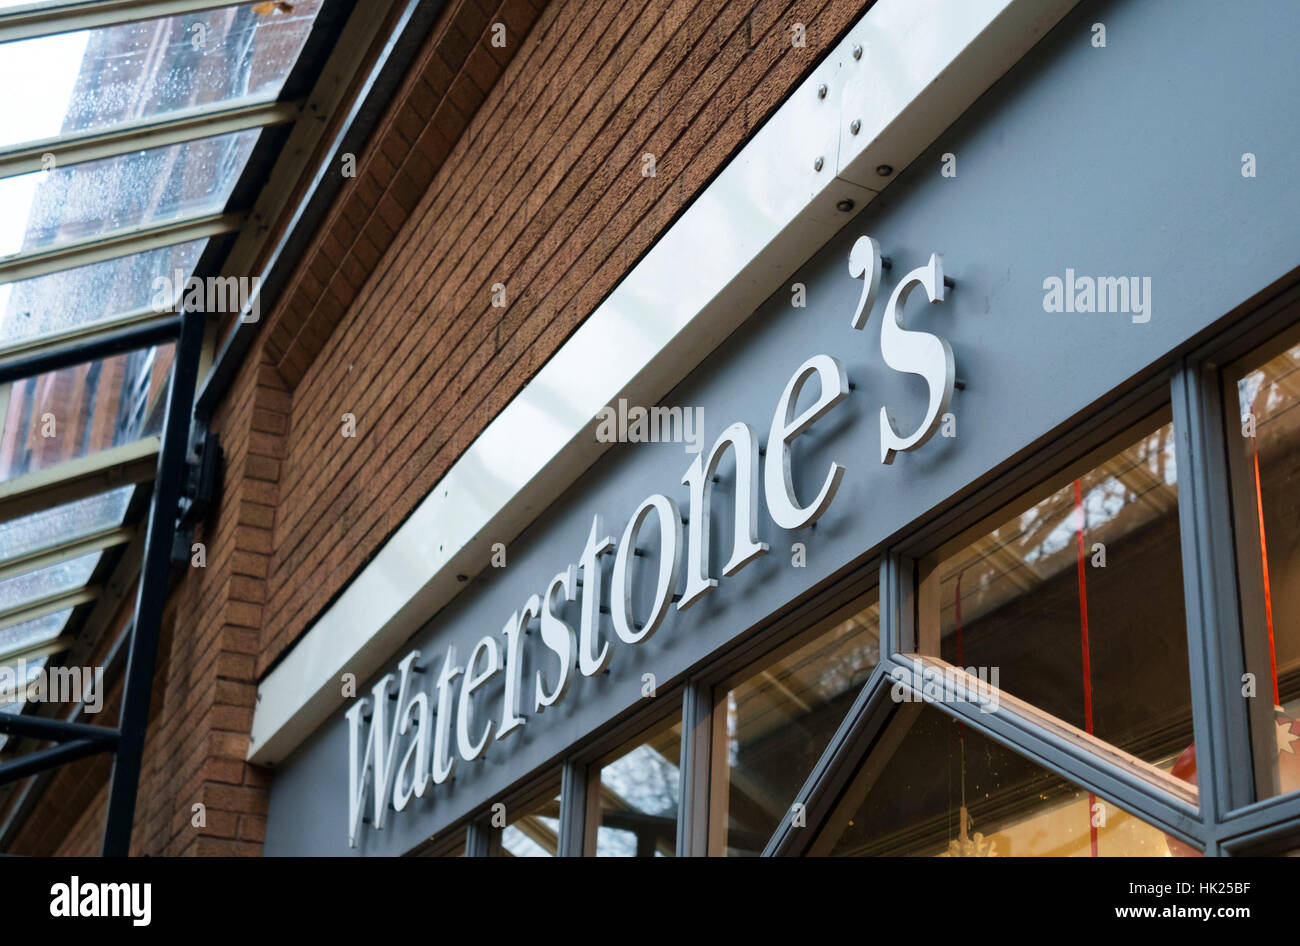 Waterstone's the booksellers shop the booksellers shop - Stock Image